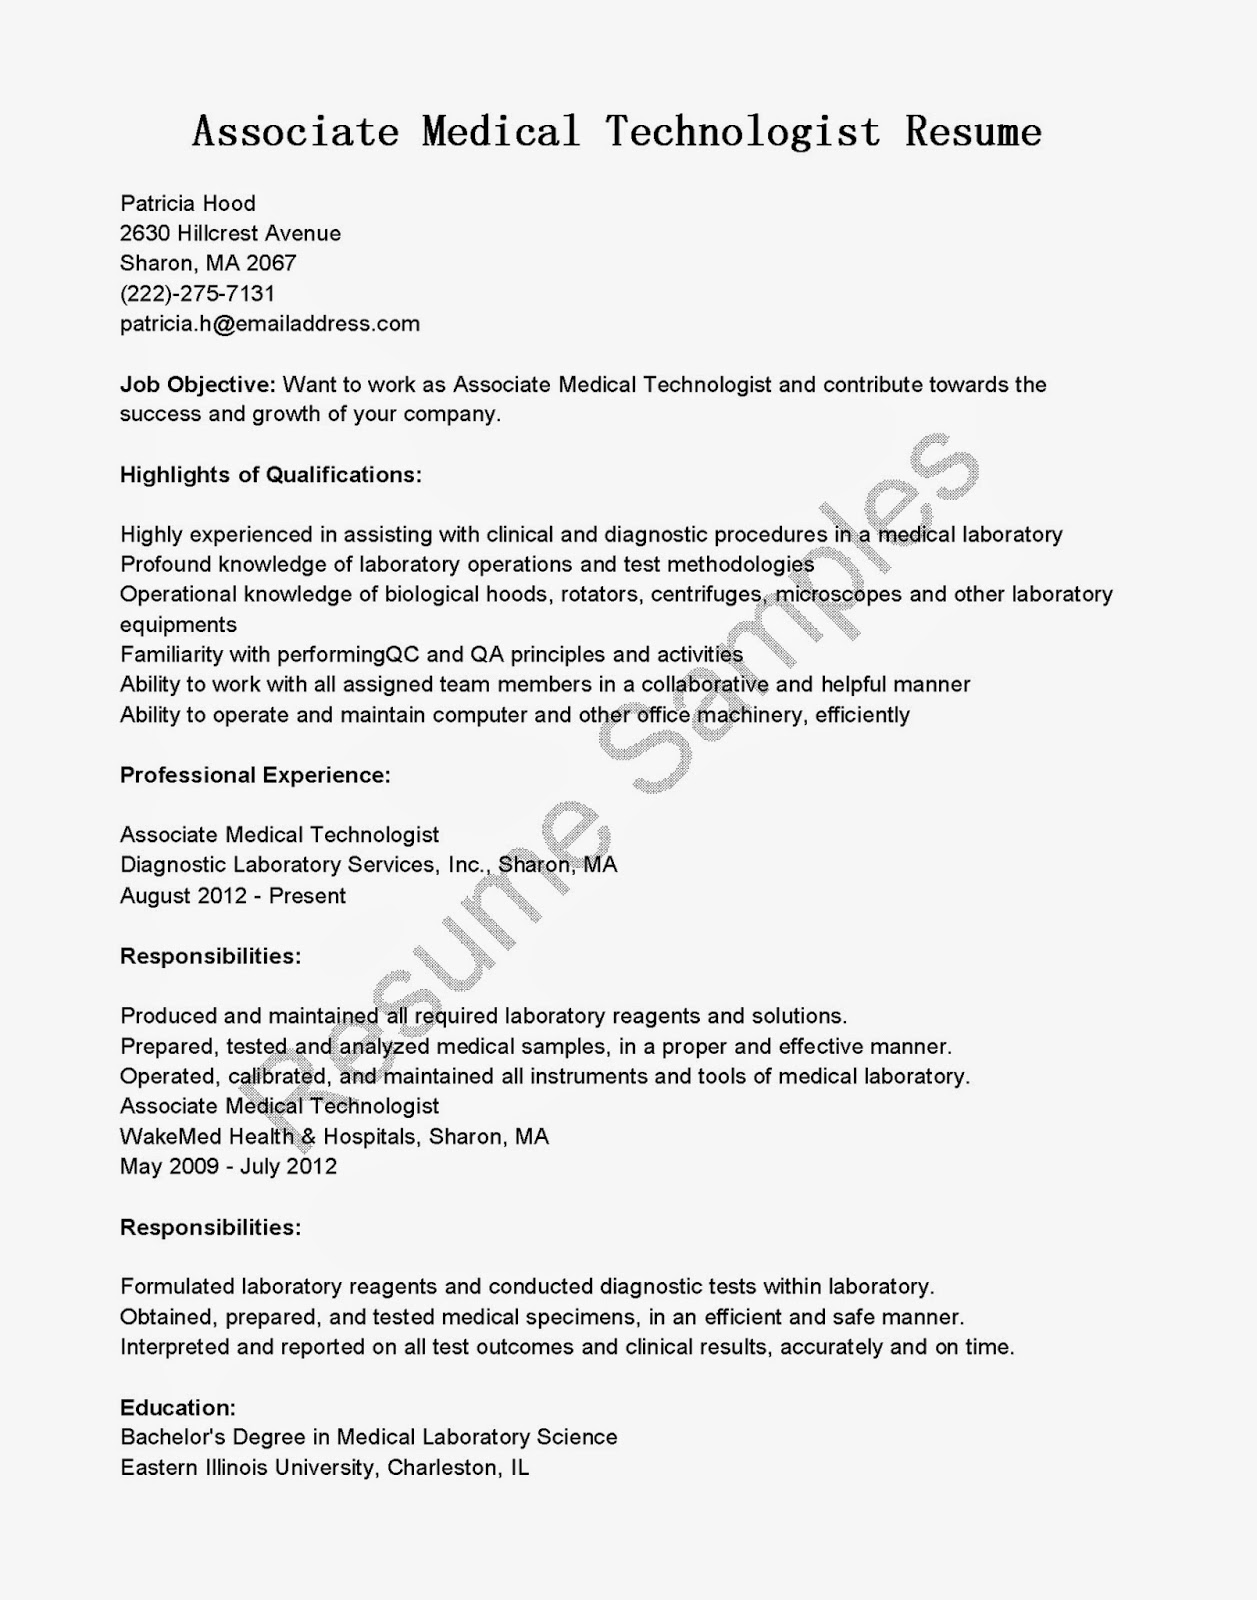 resume samples  associate medical technologist resume sample